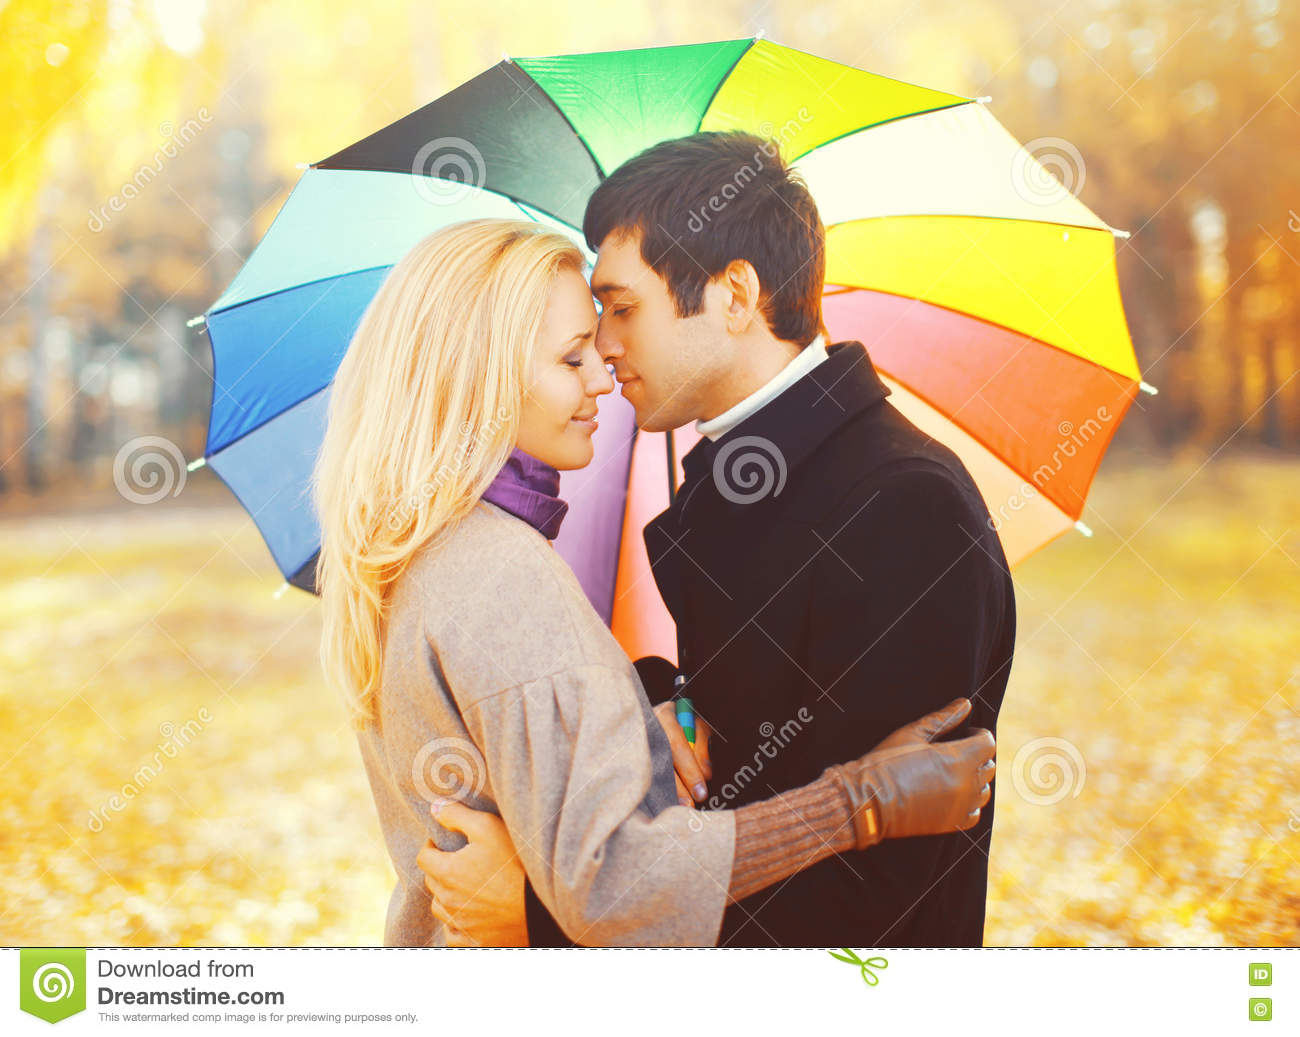 Portrait of romantic kissing couple in love with colorful umbrella together at warm sunny day over yellow leafs